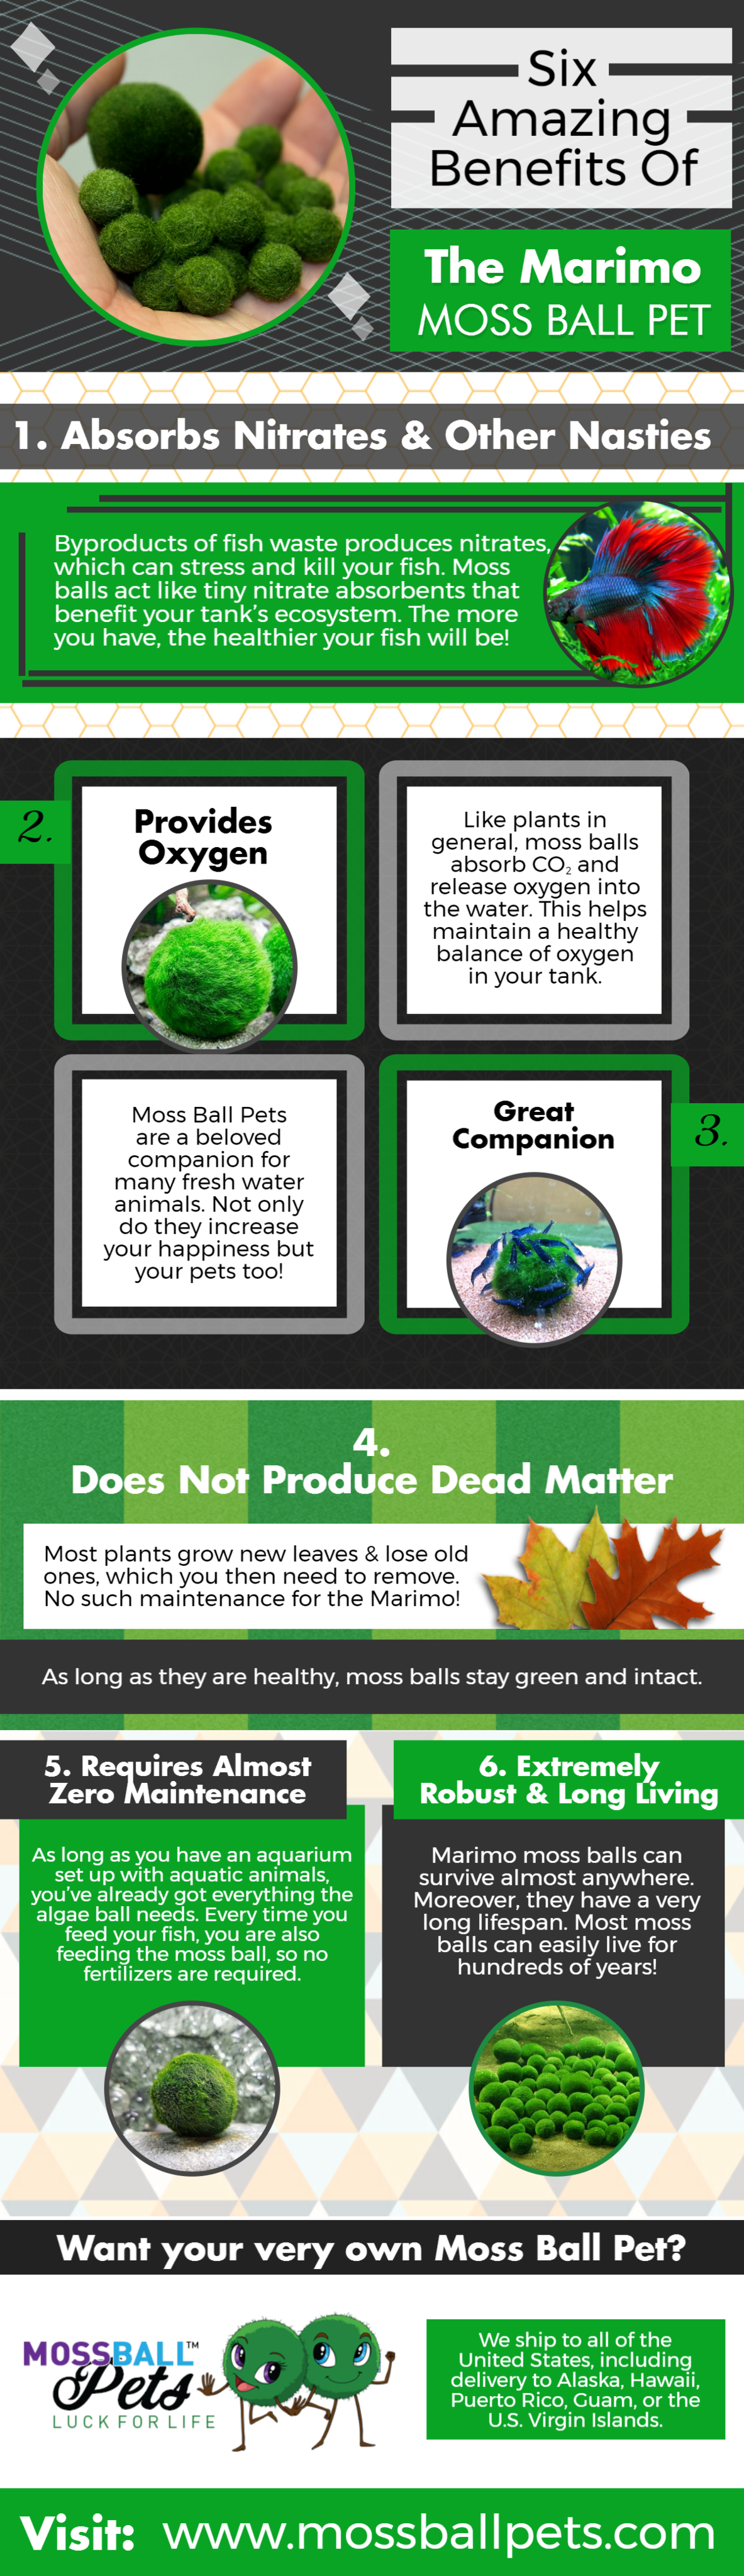 Six Amazing Benefits Of The Marimo Moss Ball Pet for more visit: https://mossballpets.com